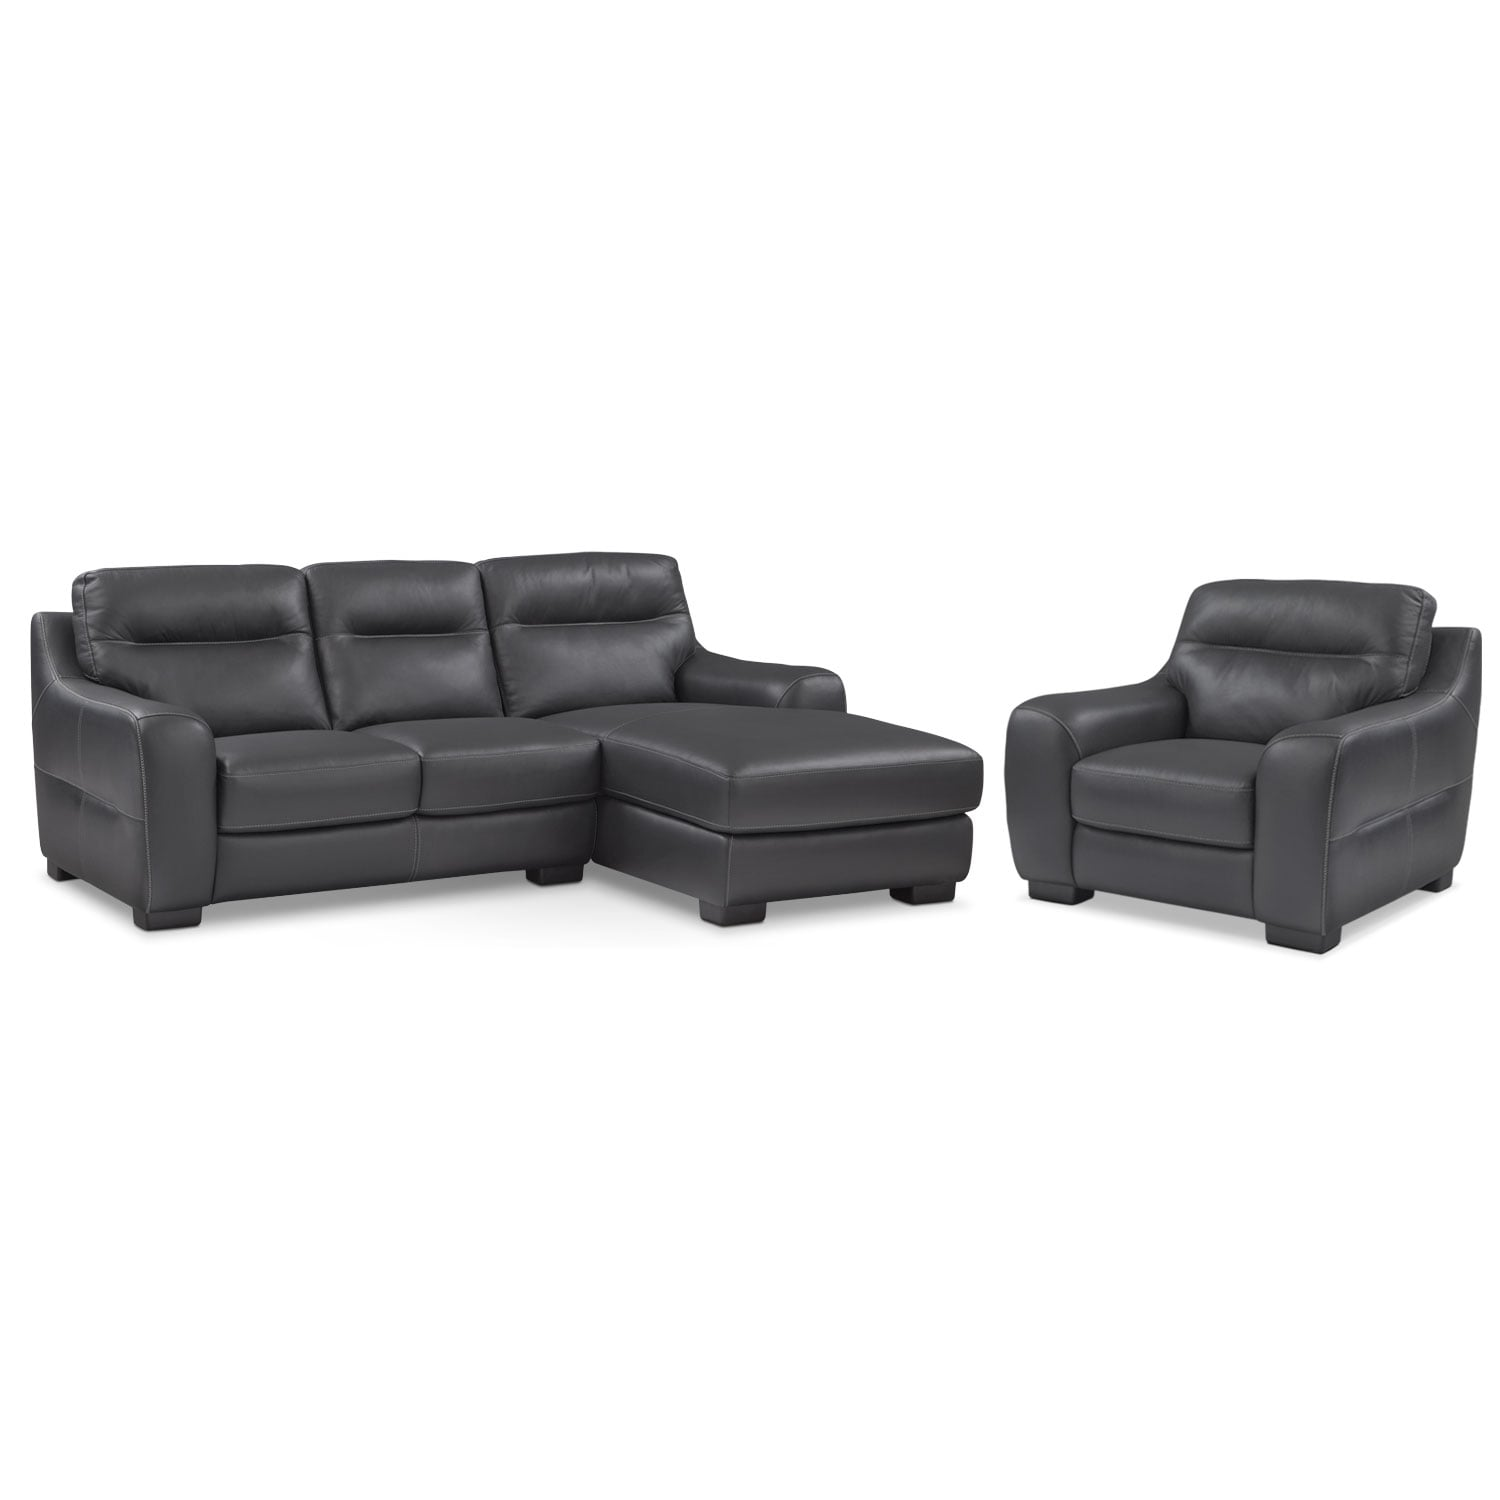 Living Room Furniture - Rocco 2-Piece Right-Facing Chaise Sectional and Chair  - Black